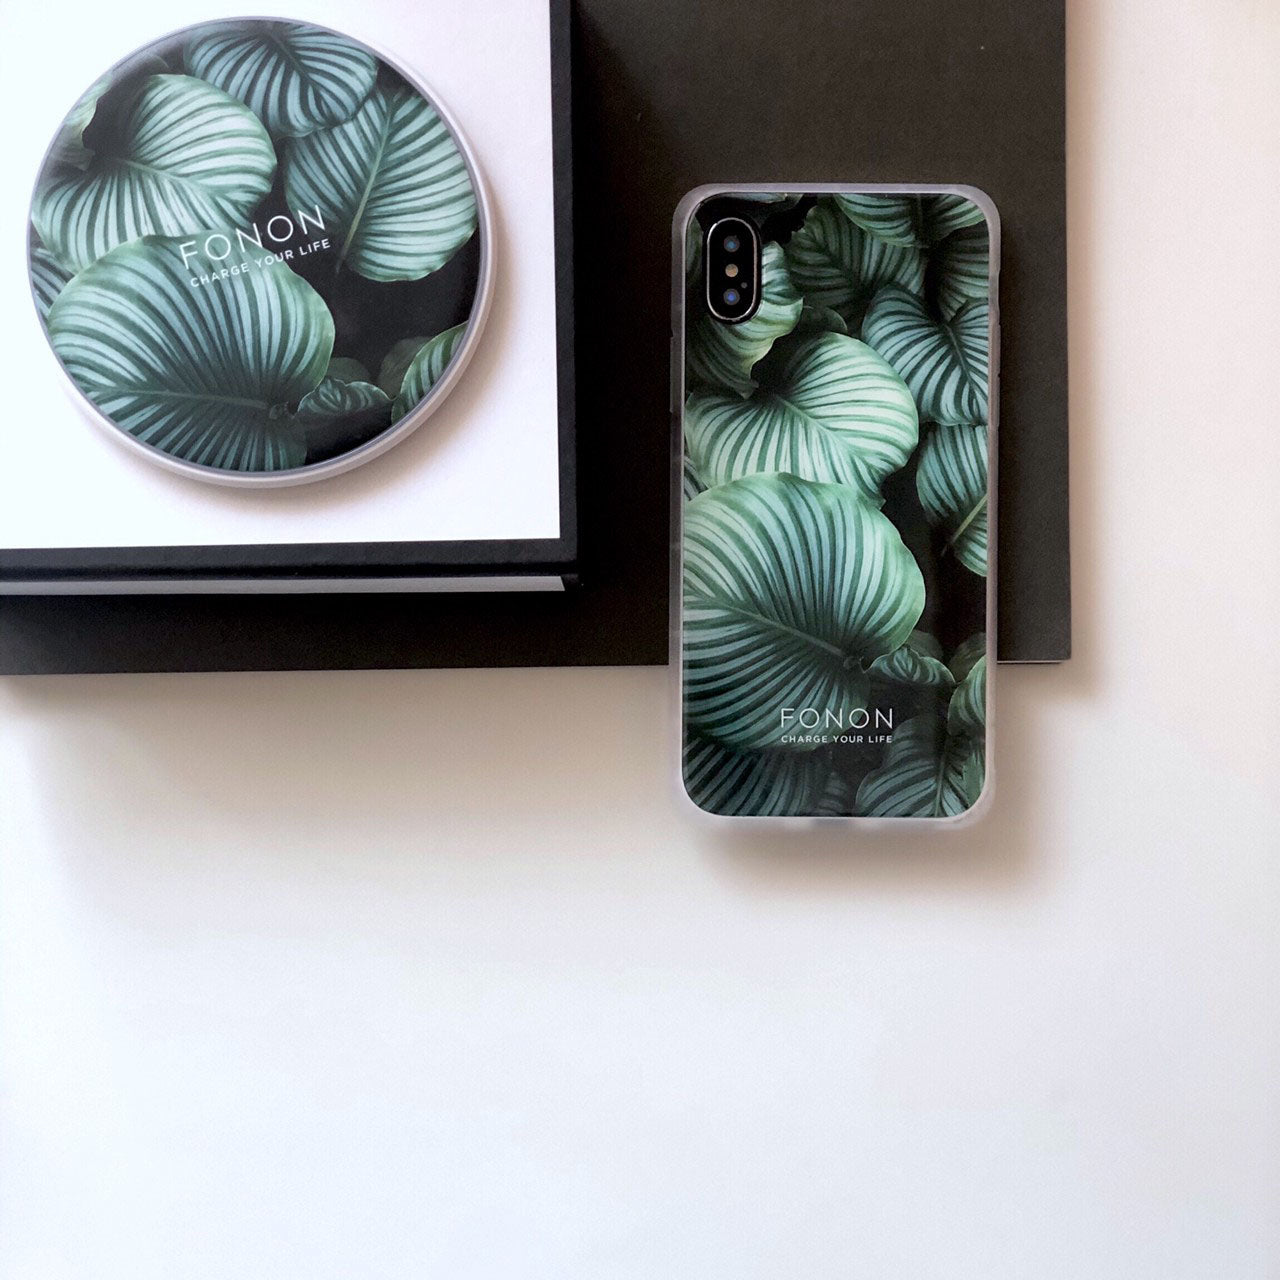 DAMPER GLASS iPhone CASE - BOTANICAL GARDEN - Unberata